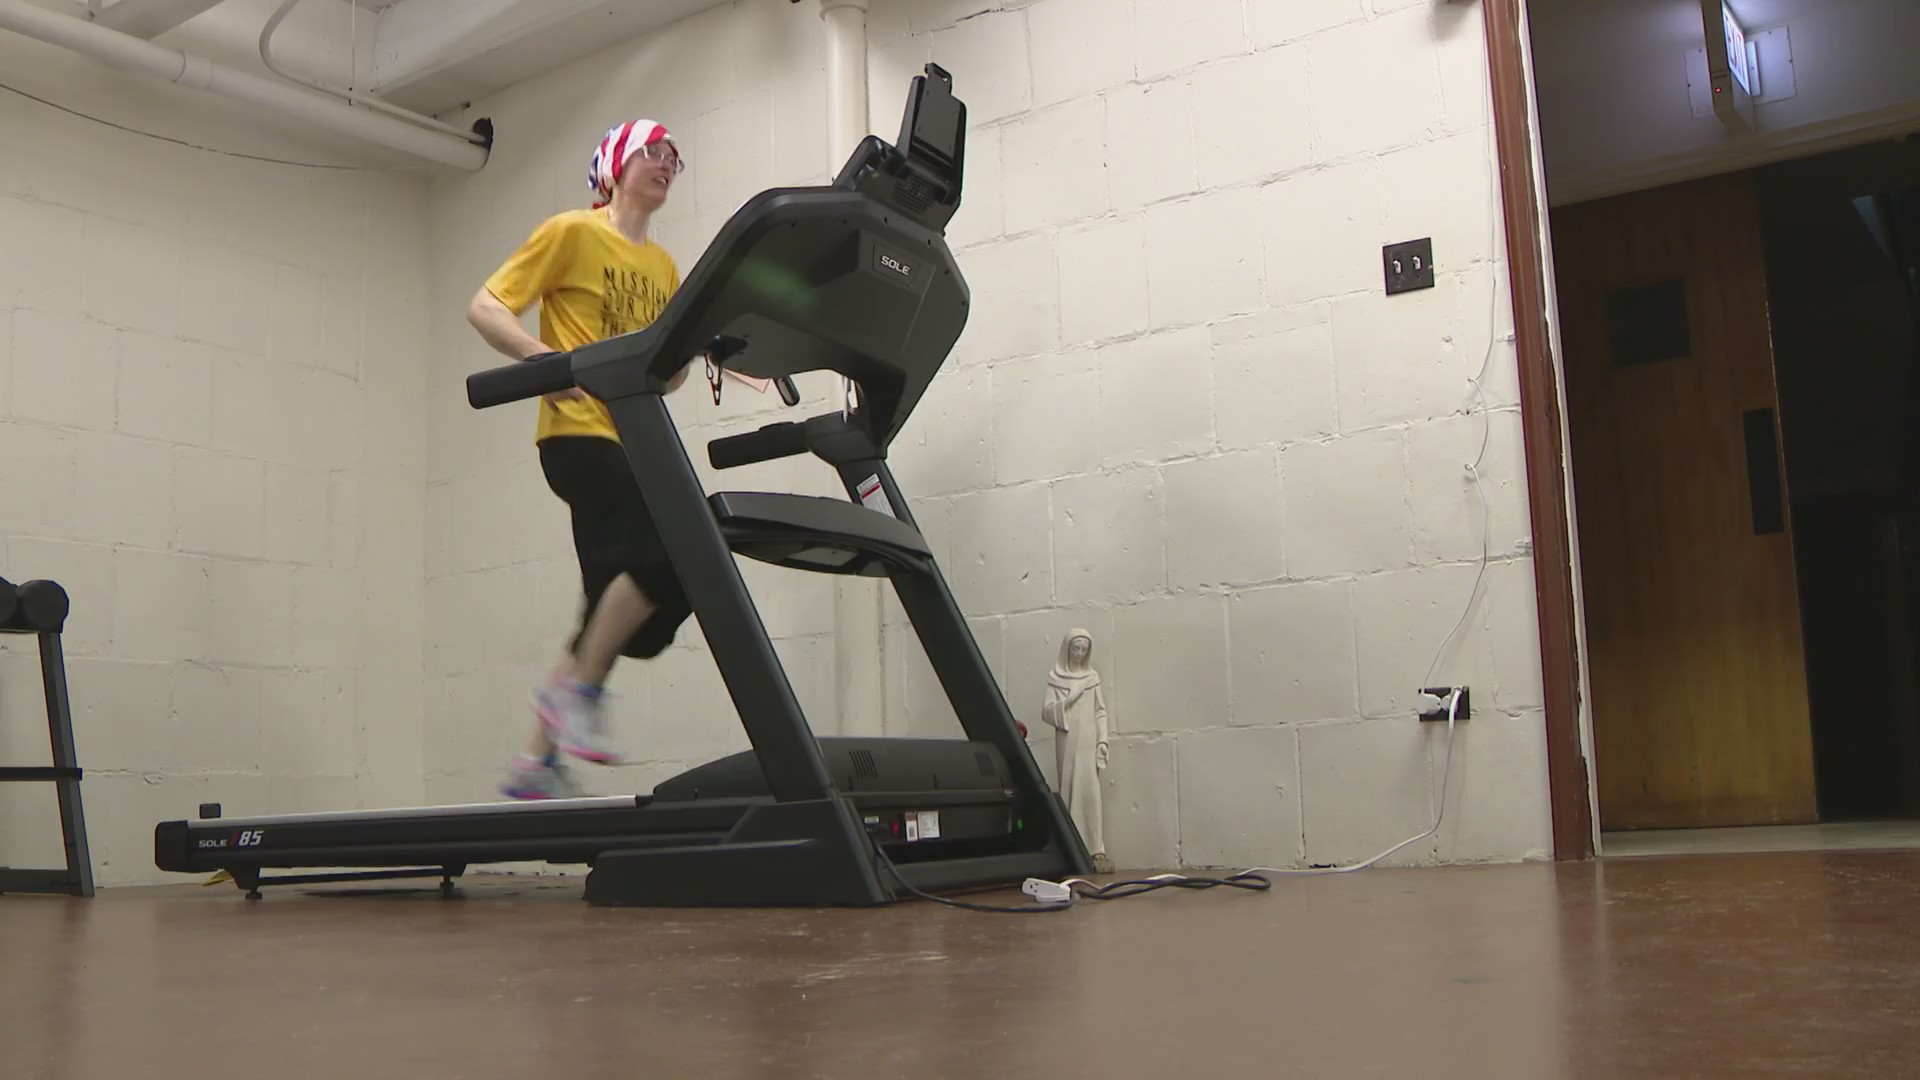 Nun Who Ran Marathons To Feed the Hungry Plans Own Race in Church Basement, Sets Sights on World Record